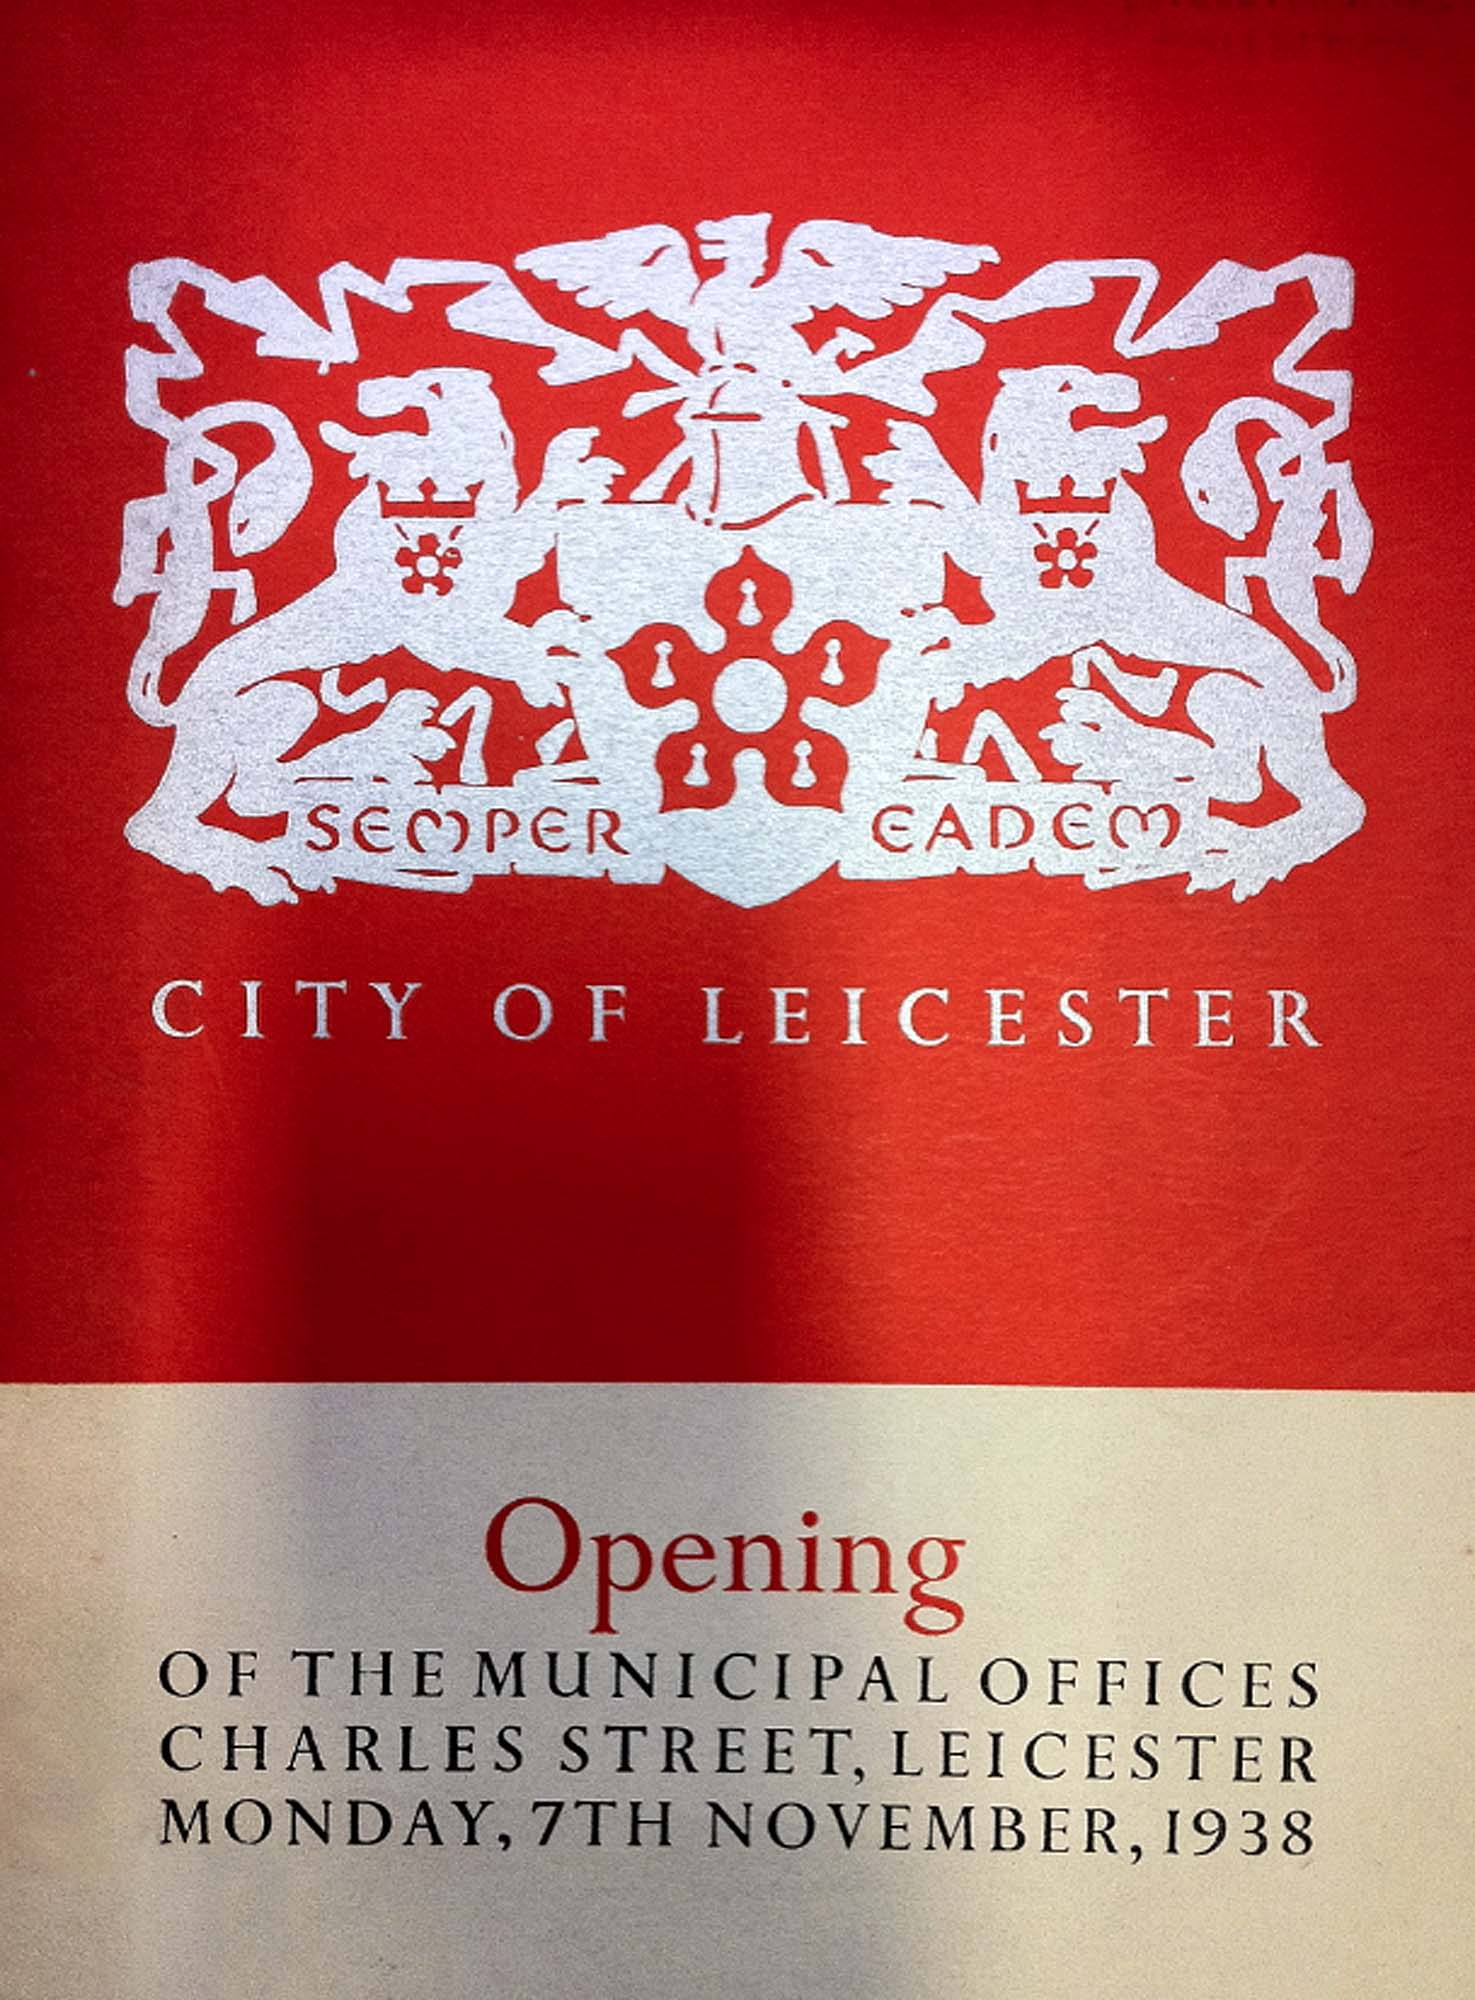 A booklet celebrating the opening of the new Municipal Offices -